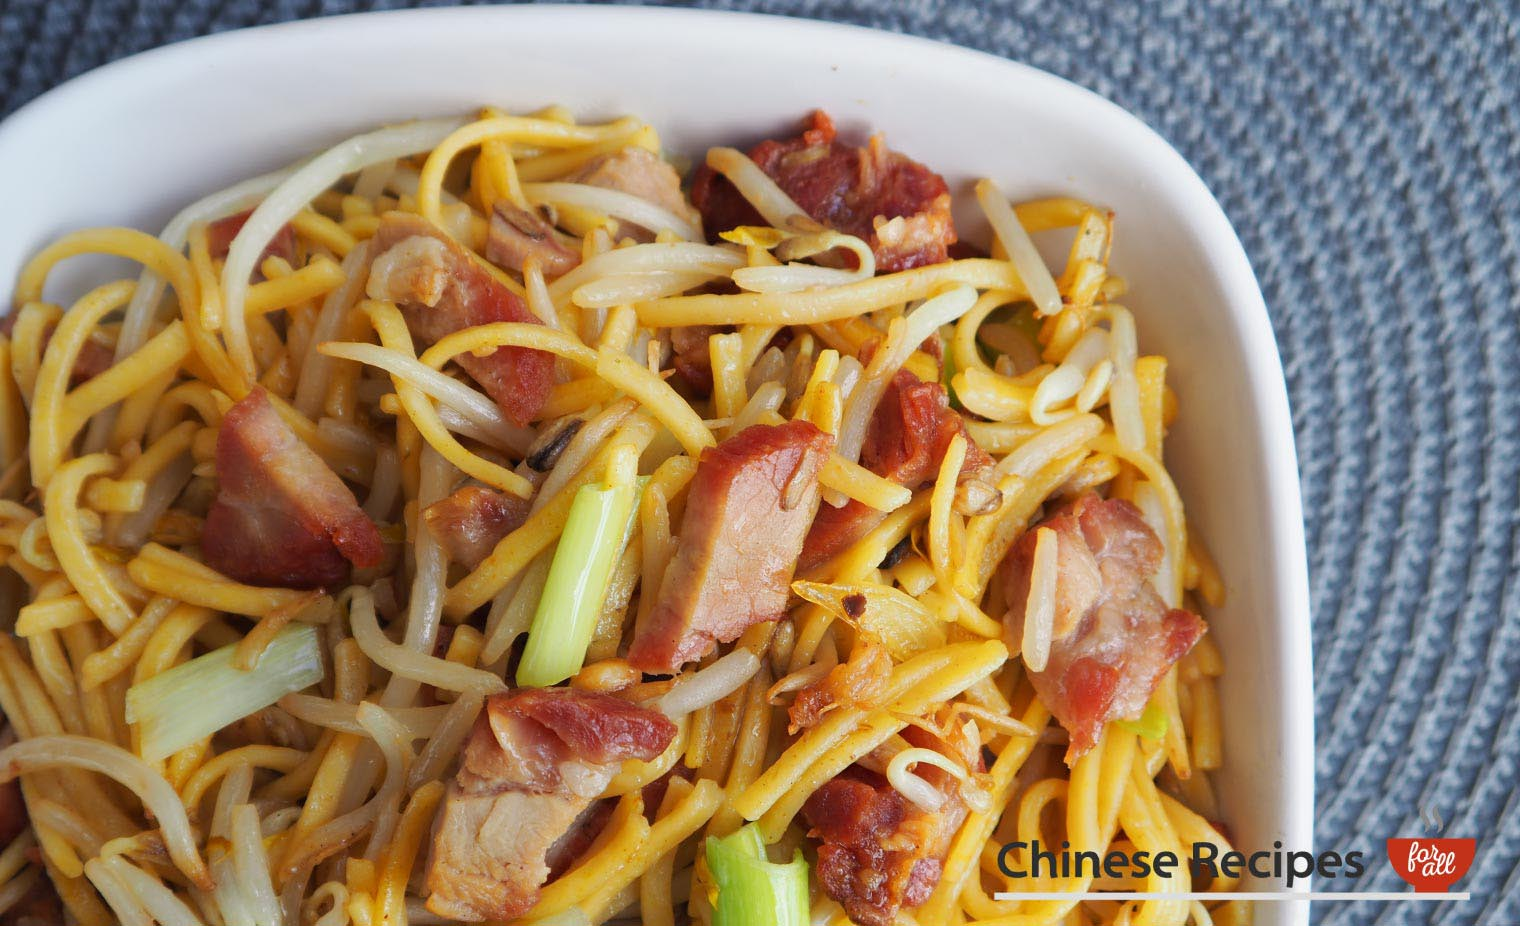 Roast Pork Chow Mein - Chinese Recipes For All